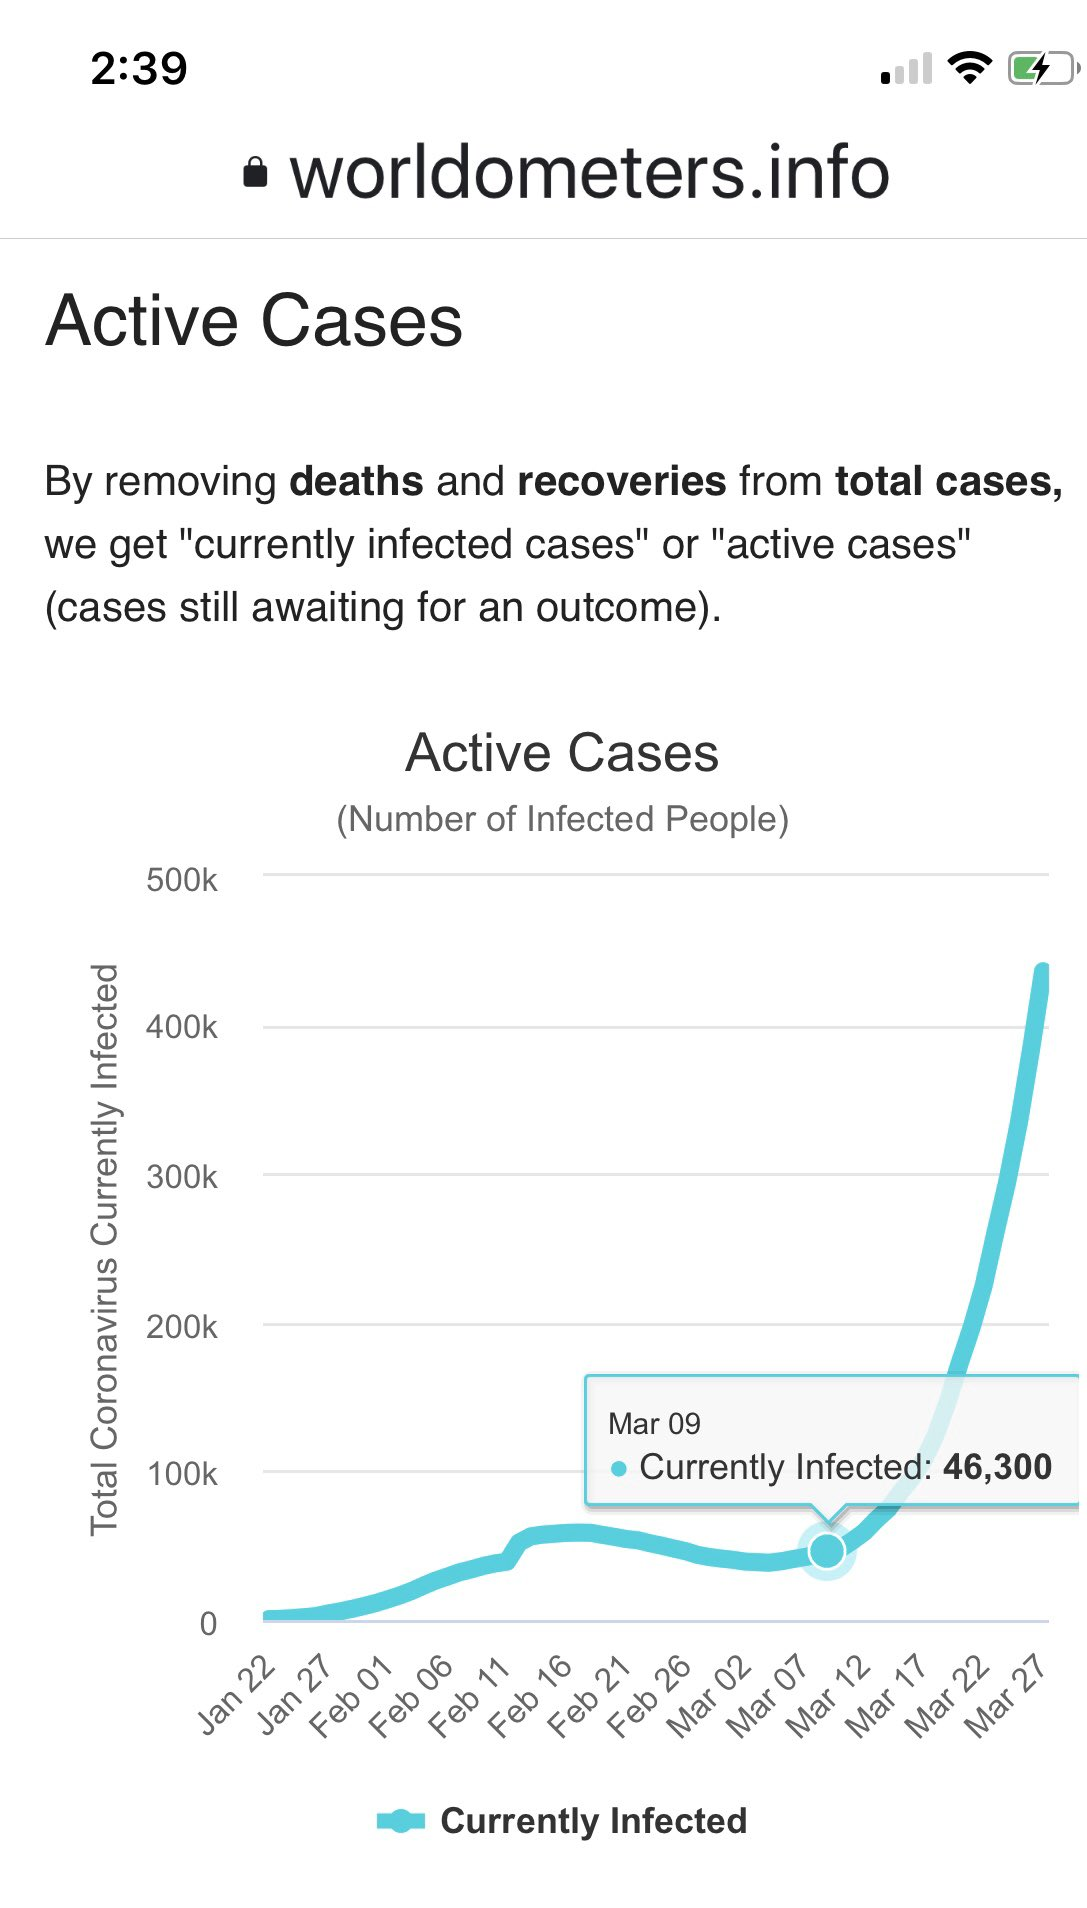 worldometers.info active cases